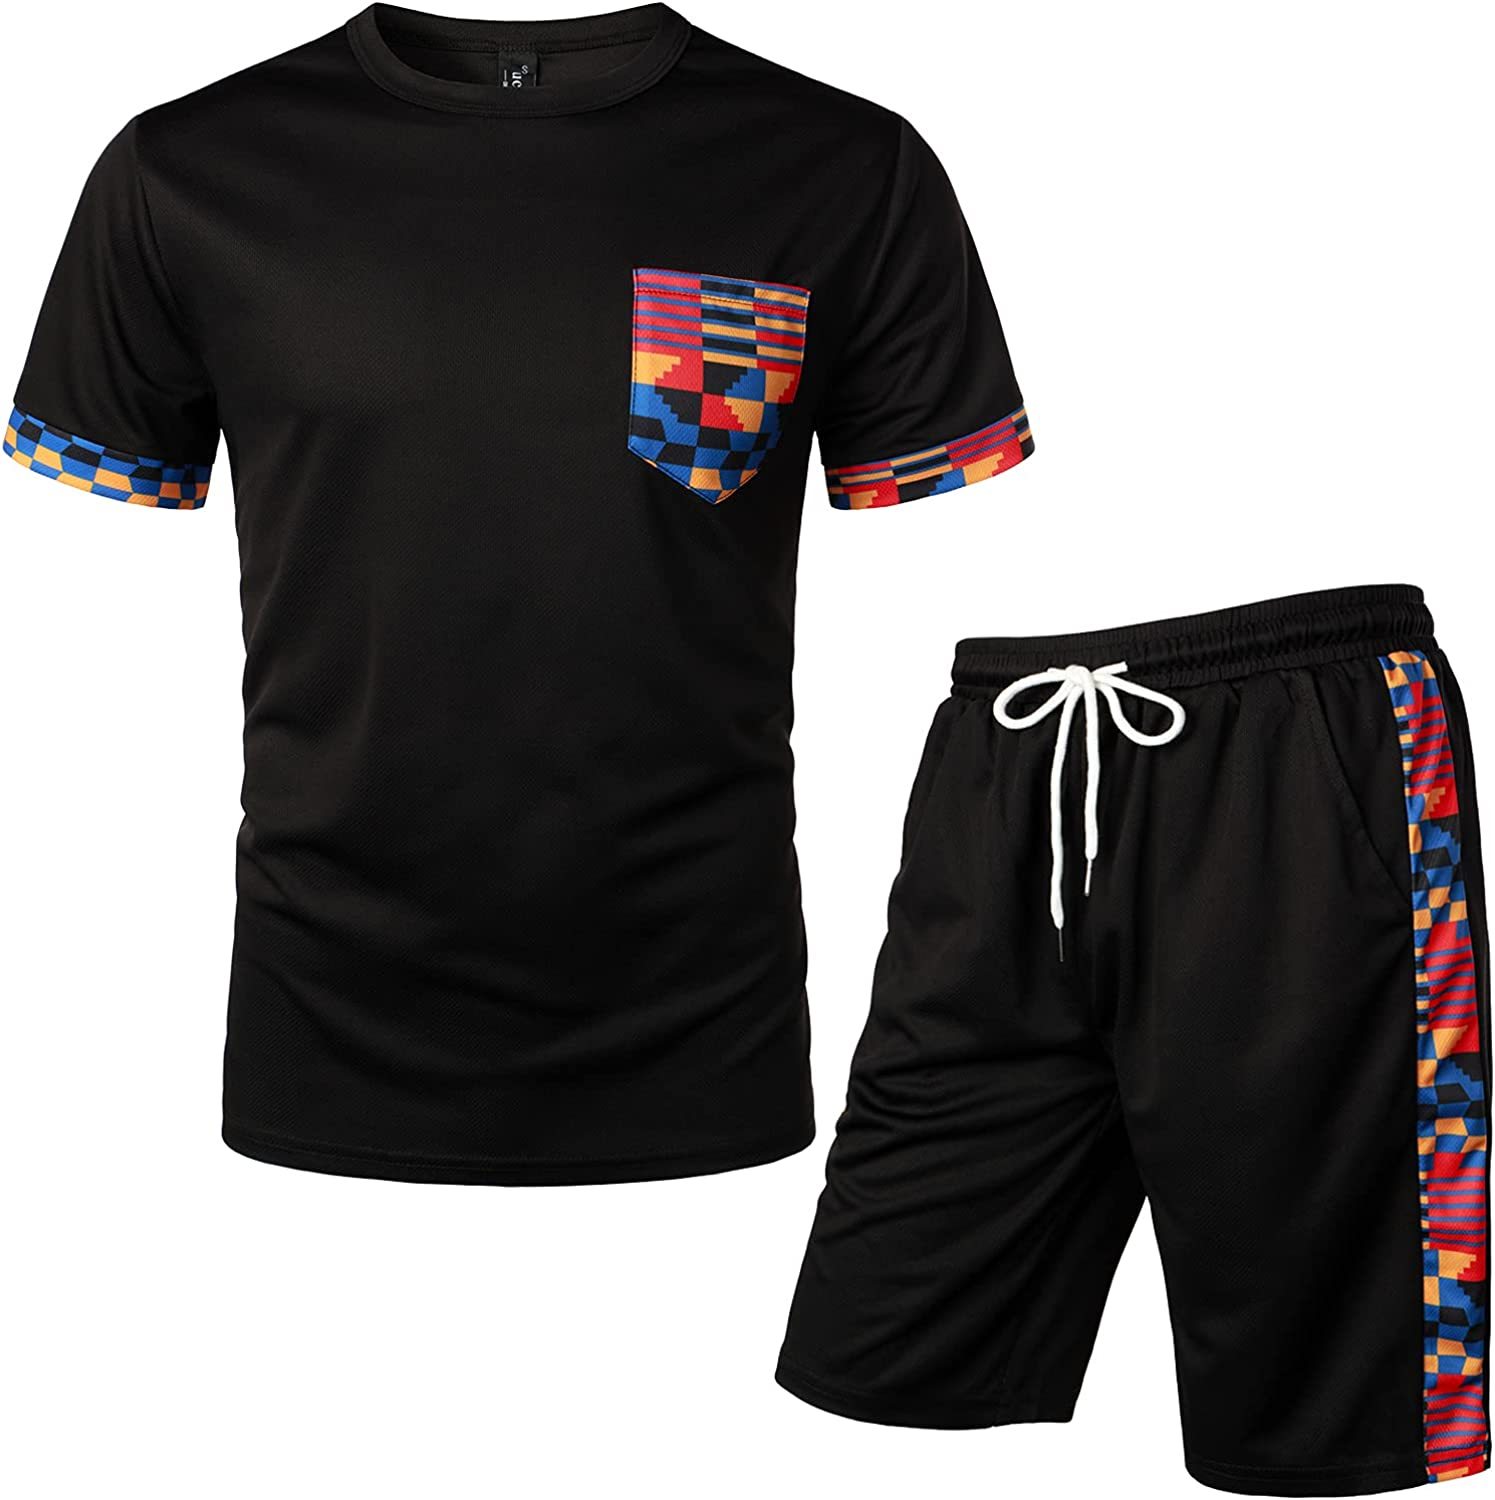 LucMatton High order Men's 2 Piece Outfits Patchwork Hipster Tee Sh Printed Branded goods